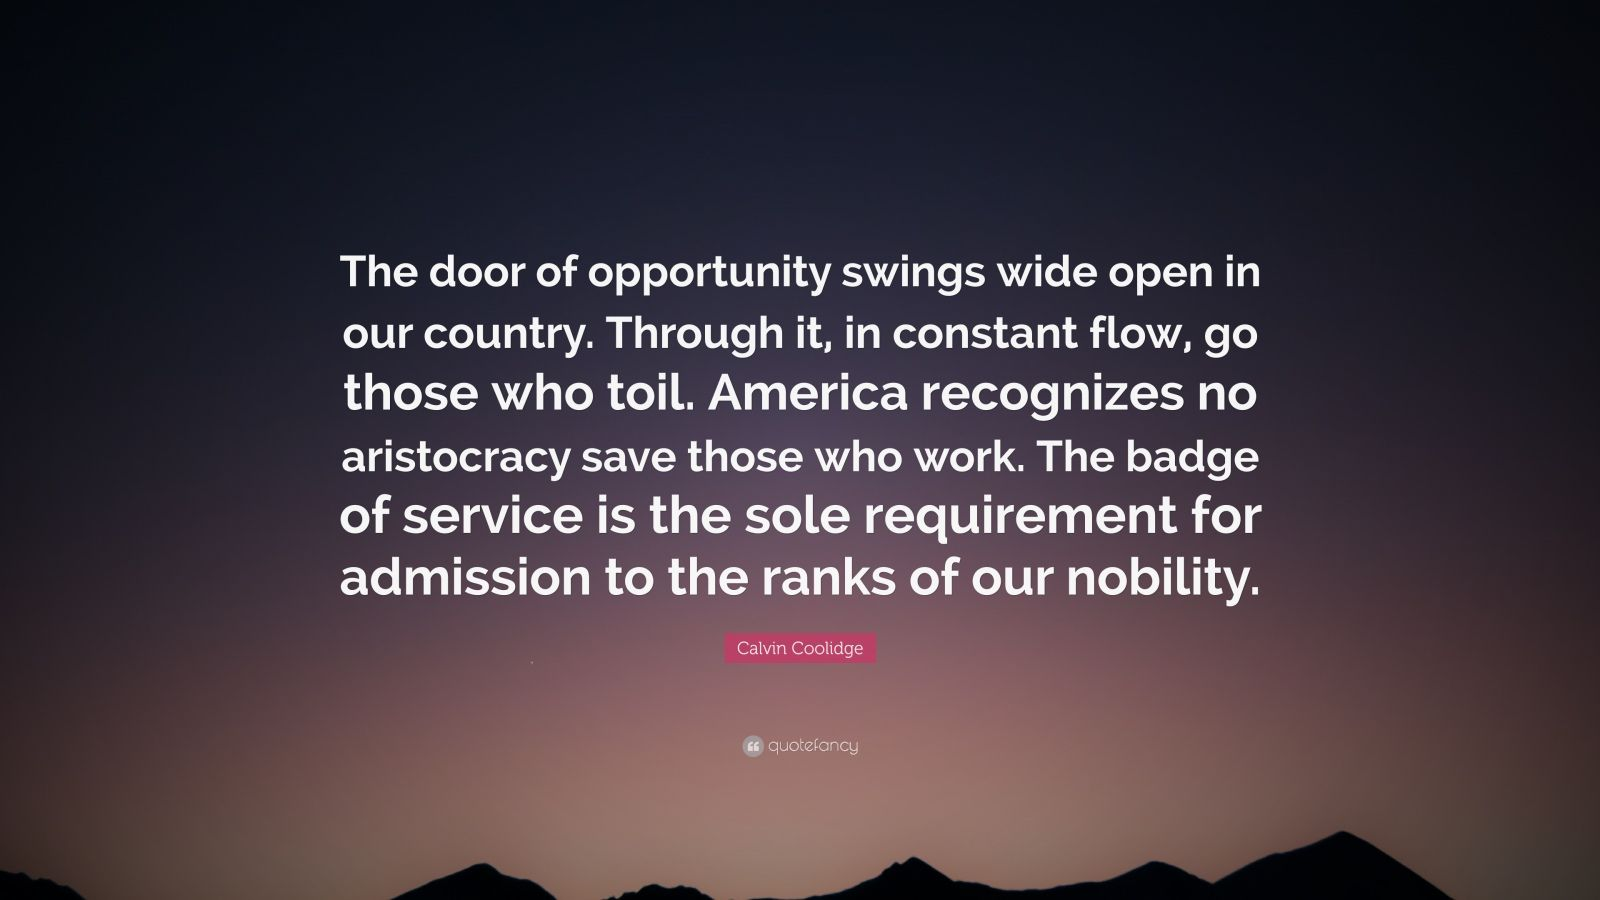 """Calvin Coolidge Quote: """"The door of opportunity swings wide open in our country. Through it, in constant flow, go those who toil. America recognizes no aristocracy save those who work. The badge of service is the sole requirement for admission to the ranks of our nobility."""""""